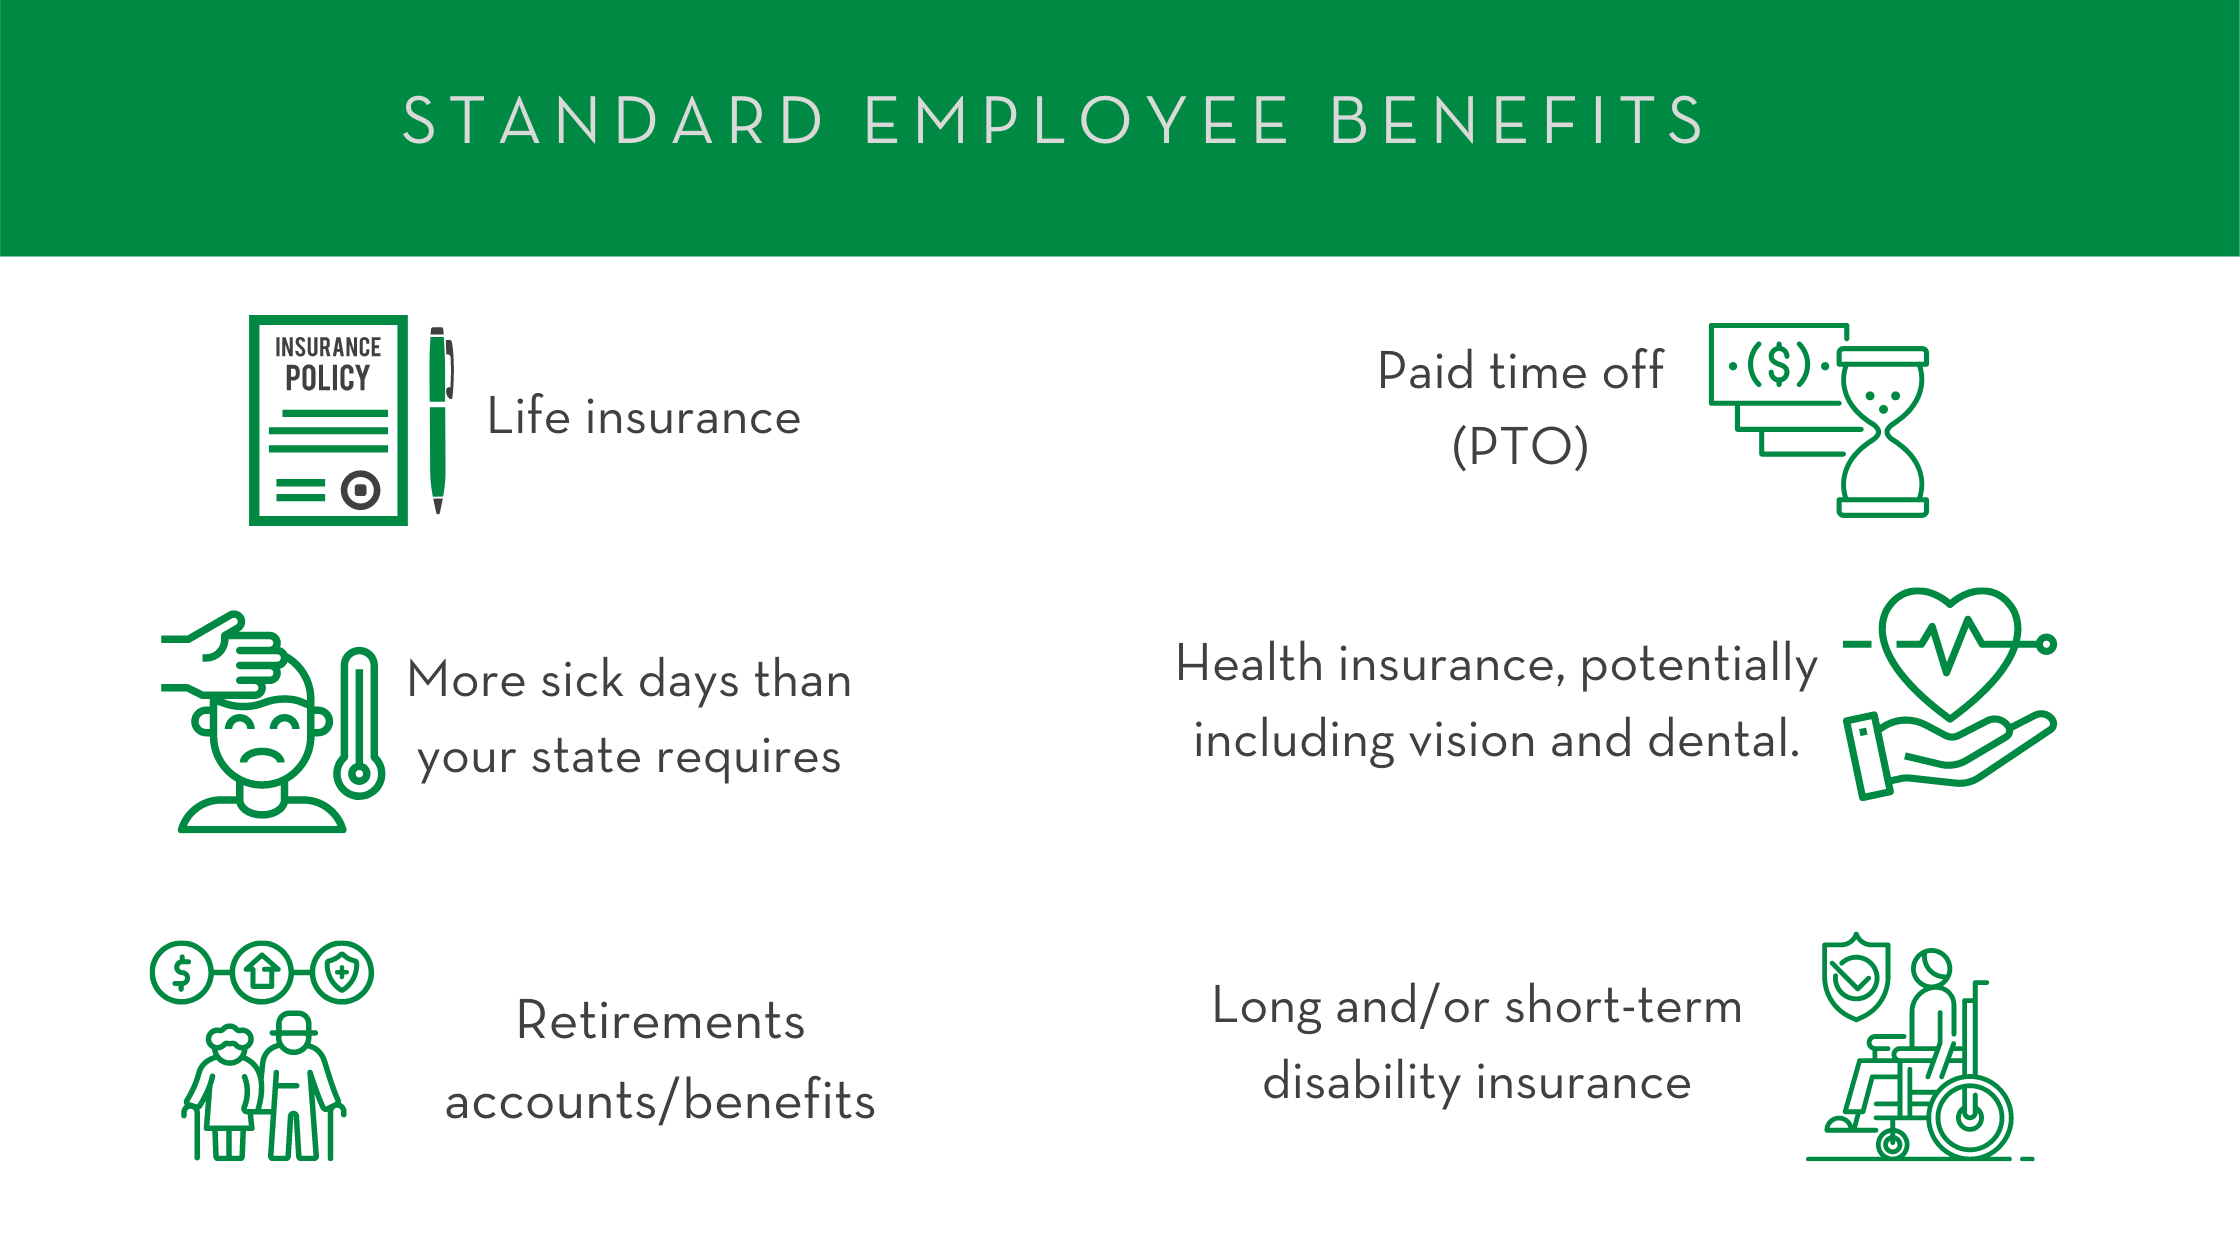 List of Standard Employee Benefits: Life Insurance, Paid Time Off (PTO), More sick days than your state requires, Health Insurance, Potentially including vision and dental, Retirement accounts/ benefits, long and/or short-term disability insurance.